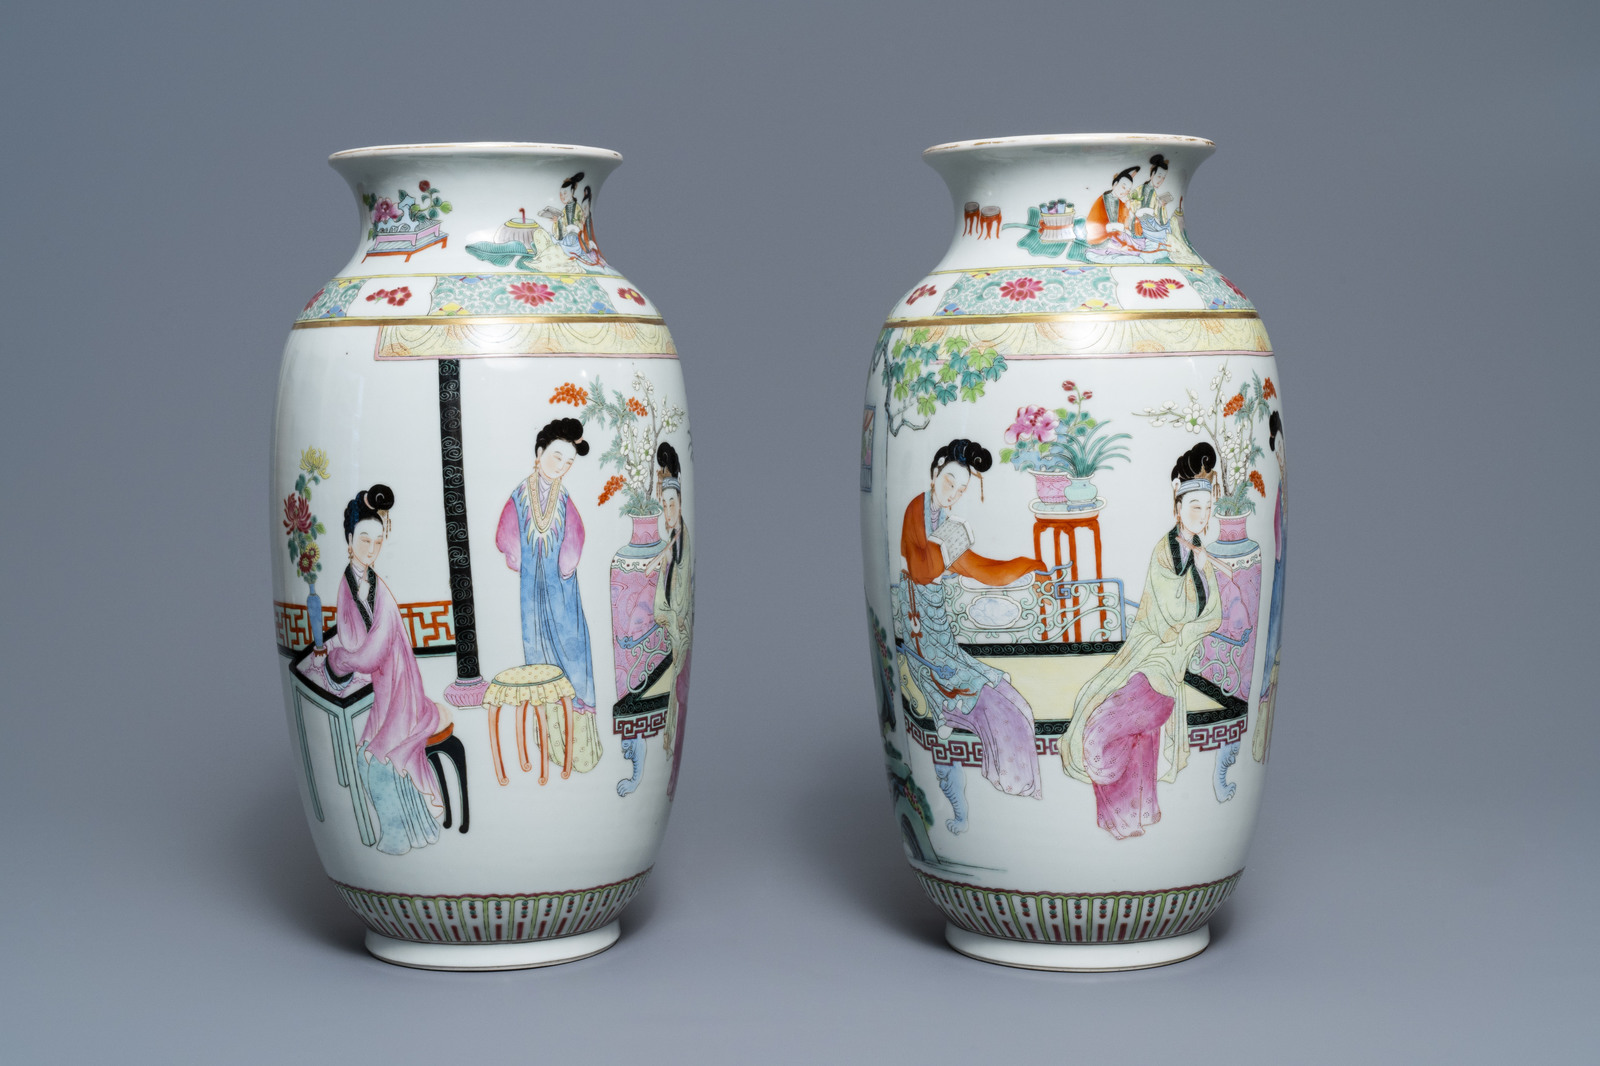 Lot 43 - A pair of fine Chinese famille rose 'ladies' vases, Qianlong mark, 19/20th C.